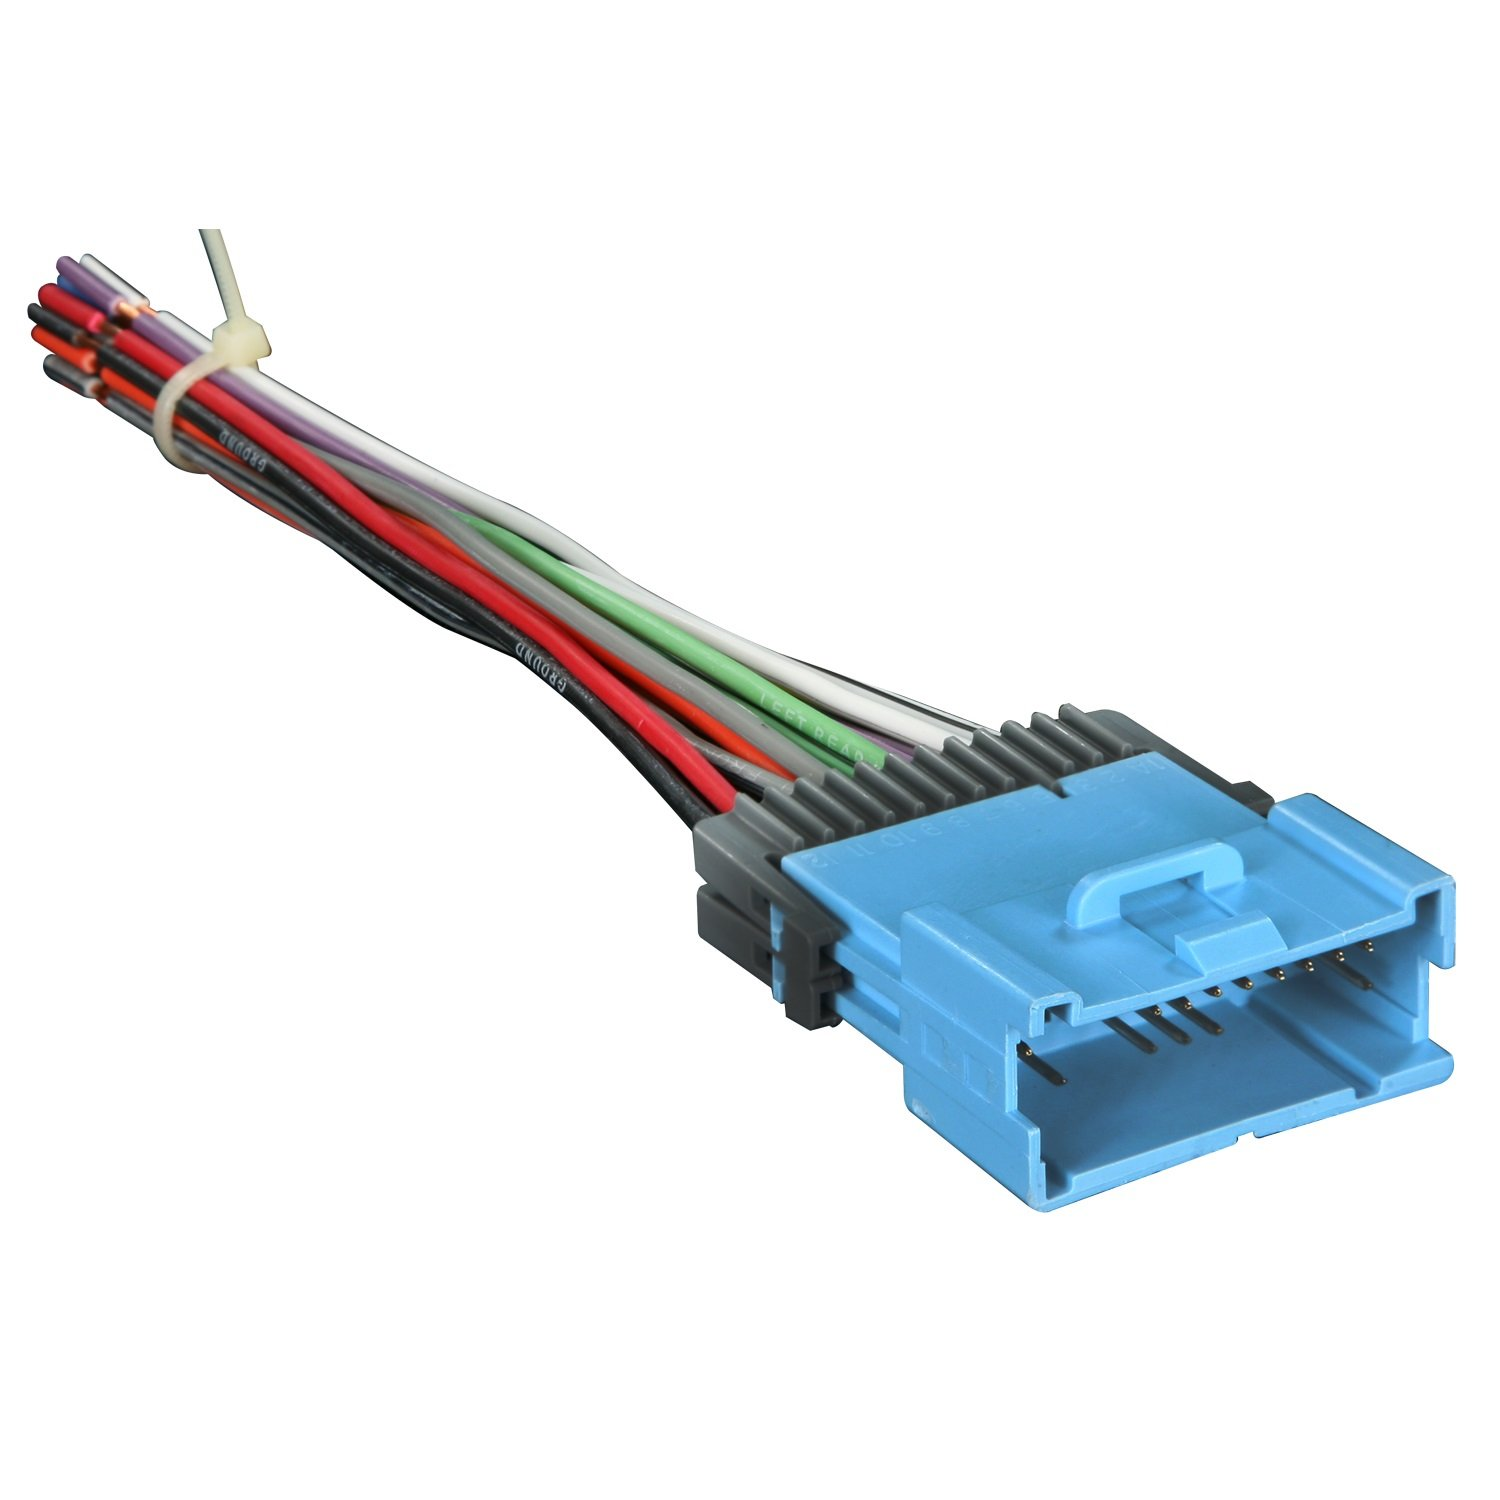 61ruWw 2aJL._SL1500_ amazon com metra 70 2102 radio wiring harness for gm 04 05 car  at bakdesigns.co